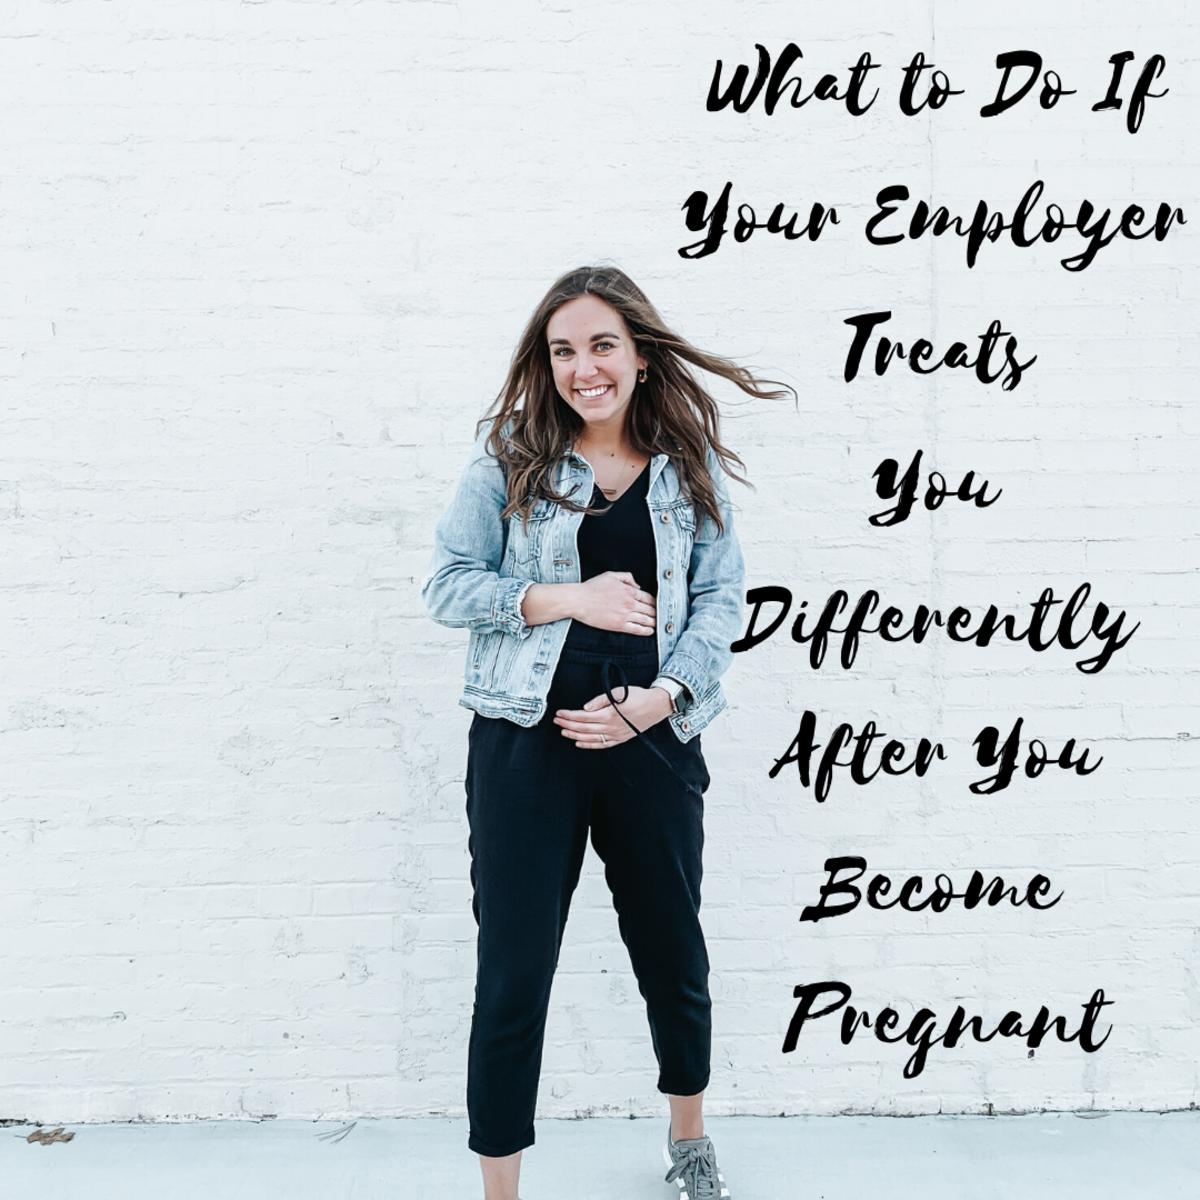 What to Do If Your Employer Treats You Differently After You Become Pregnant